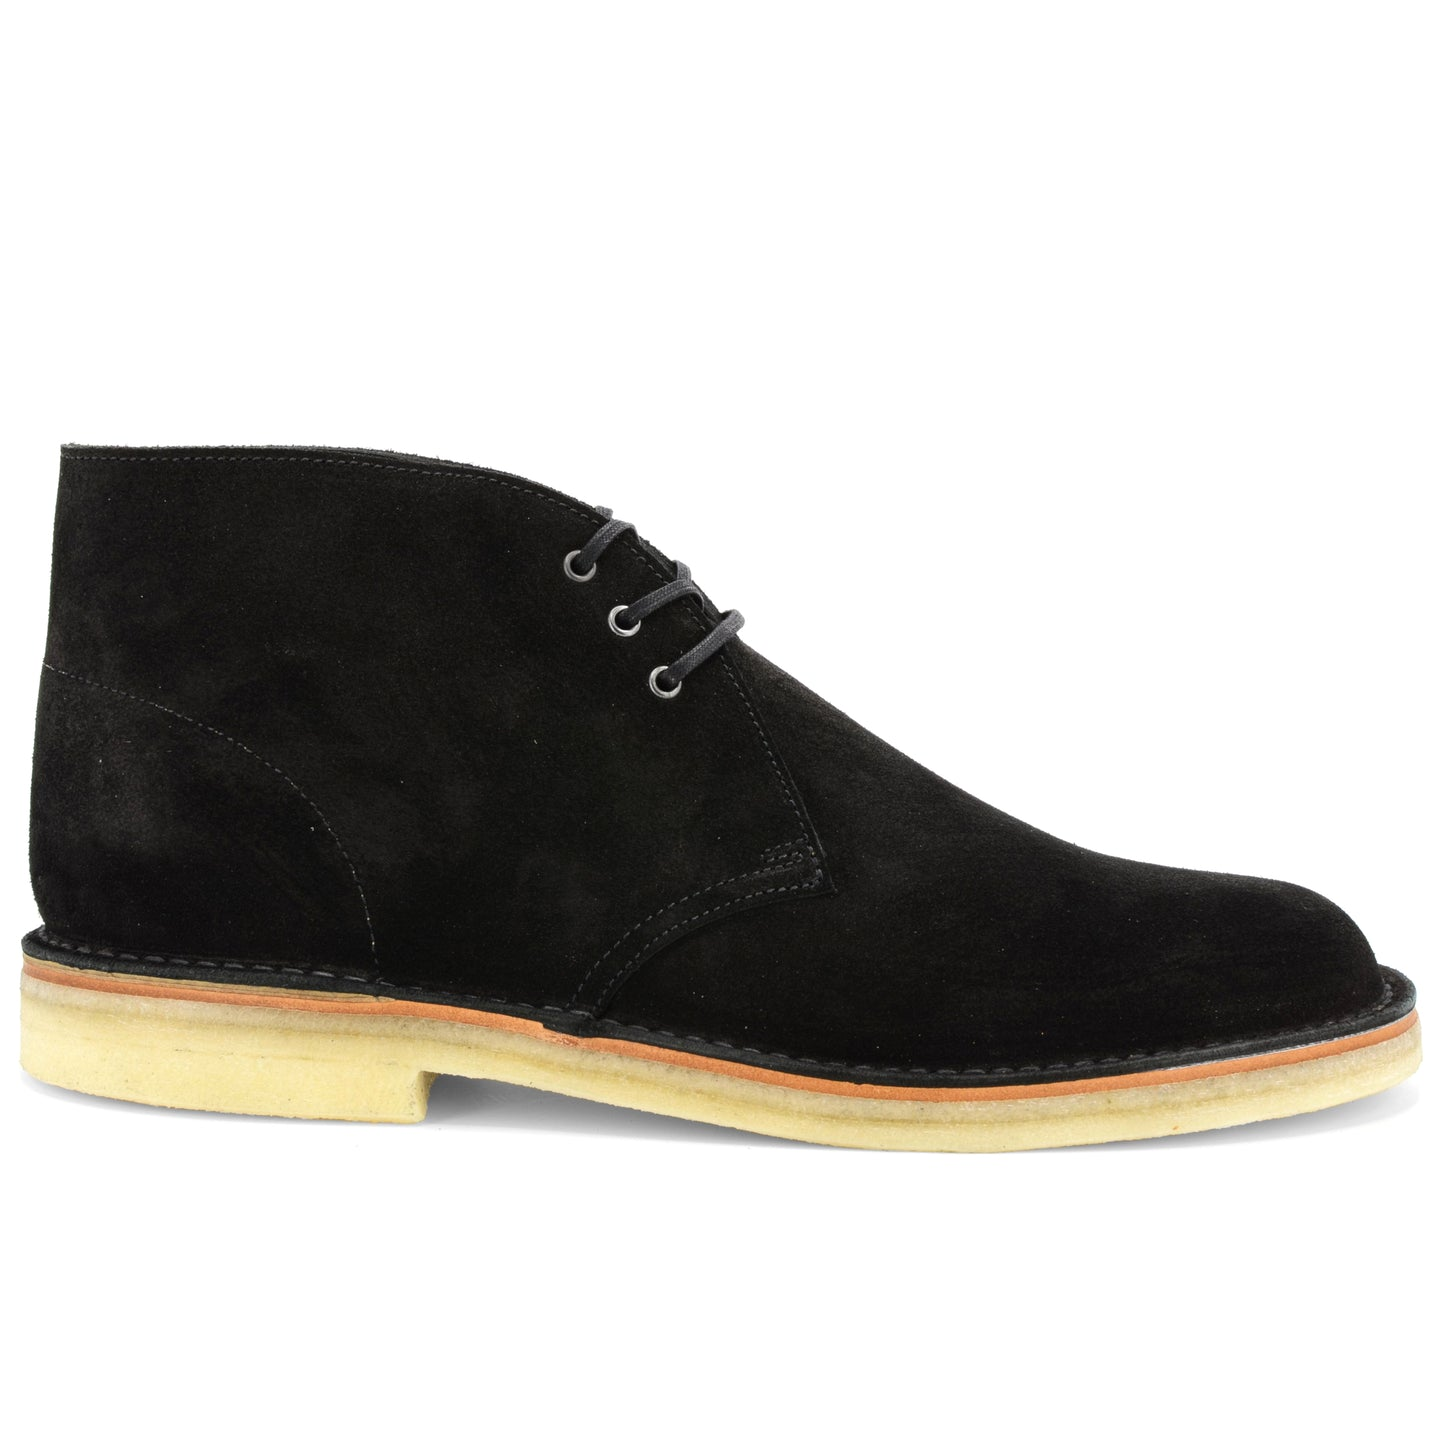 Desert Boot Black Suede Made in England